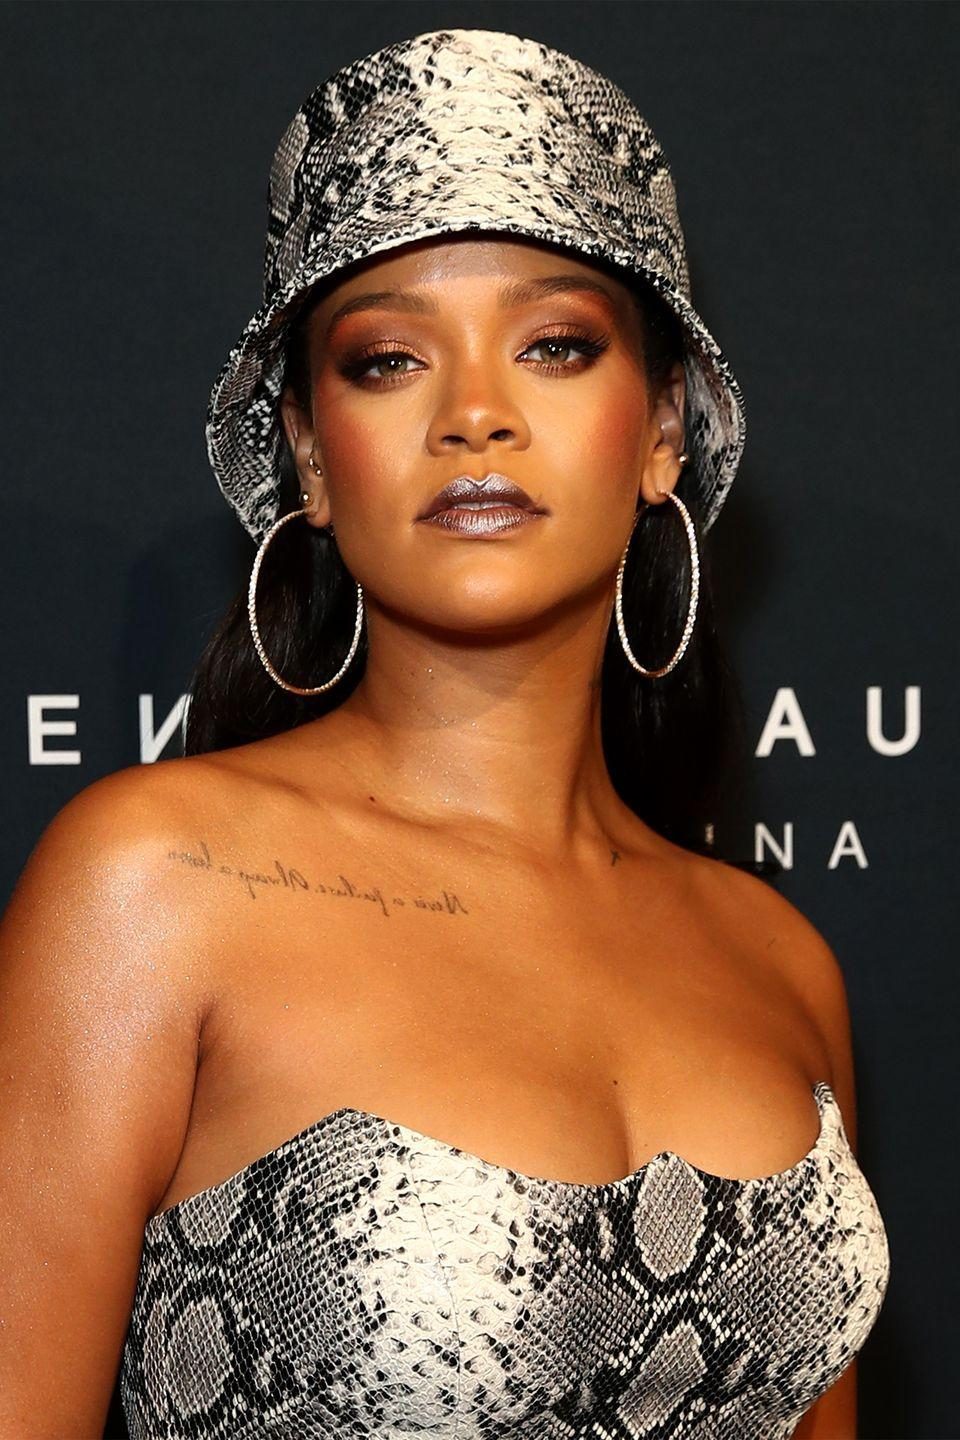 "<p>Rihanna was just 16 when she signed a record deal with Def Jam and <a href=""https://www.bet.com/celebrities/photos/2015/01/successful-celebs-who-dropped-out-of-high-school.html#!012515-celebs-successful-celebs-who-dropped-out-of-high-school-rihanna"" rel=""nofollow noopener"" target=""_blank"" data-ylk=""slk:left school"" class=""link rapid-noclick-resp"">left school</a>. Since then, she has dropped countless hits and built a fashion and beauty empire with her Fenty lines. She is also reportedly launching a <a href=""https://www.harpersbazaar.com/celebrity/latest/a25931217/rihanna-and-lvmh-to-start-luxury-fashion-brand/"" rel=""nofollow noopener"" target=""_blank"" data-ylk=""slk:luxury fashion house"" class=""link rapid-noclick-resp"">luxury fashion house</a>. </p>"